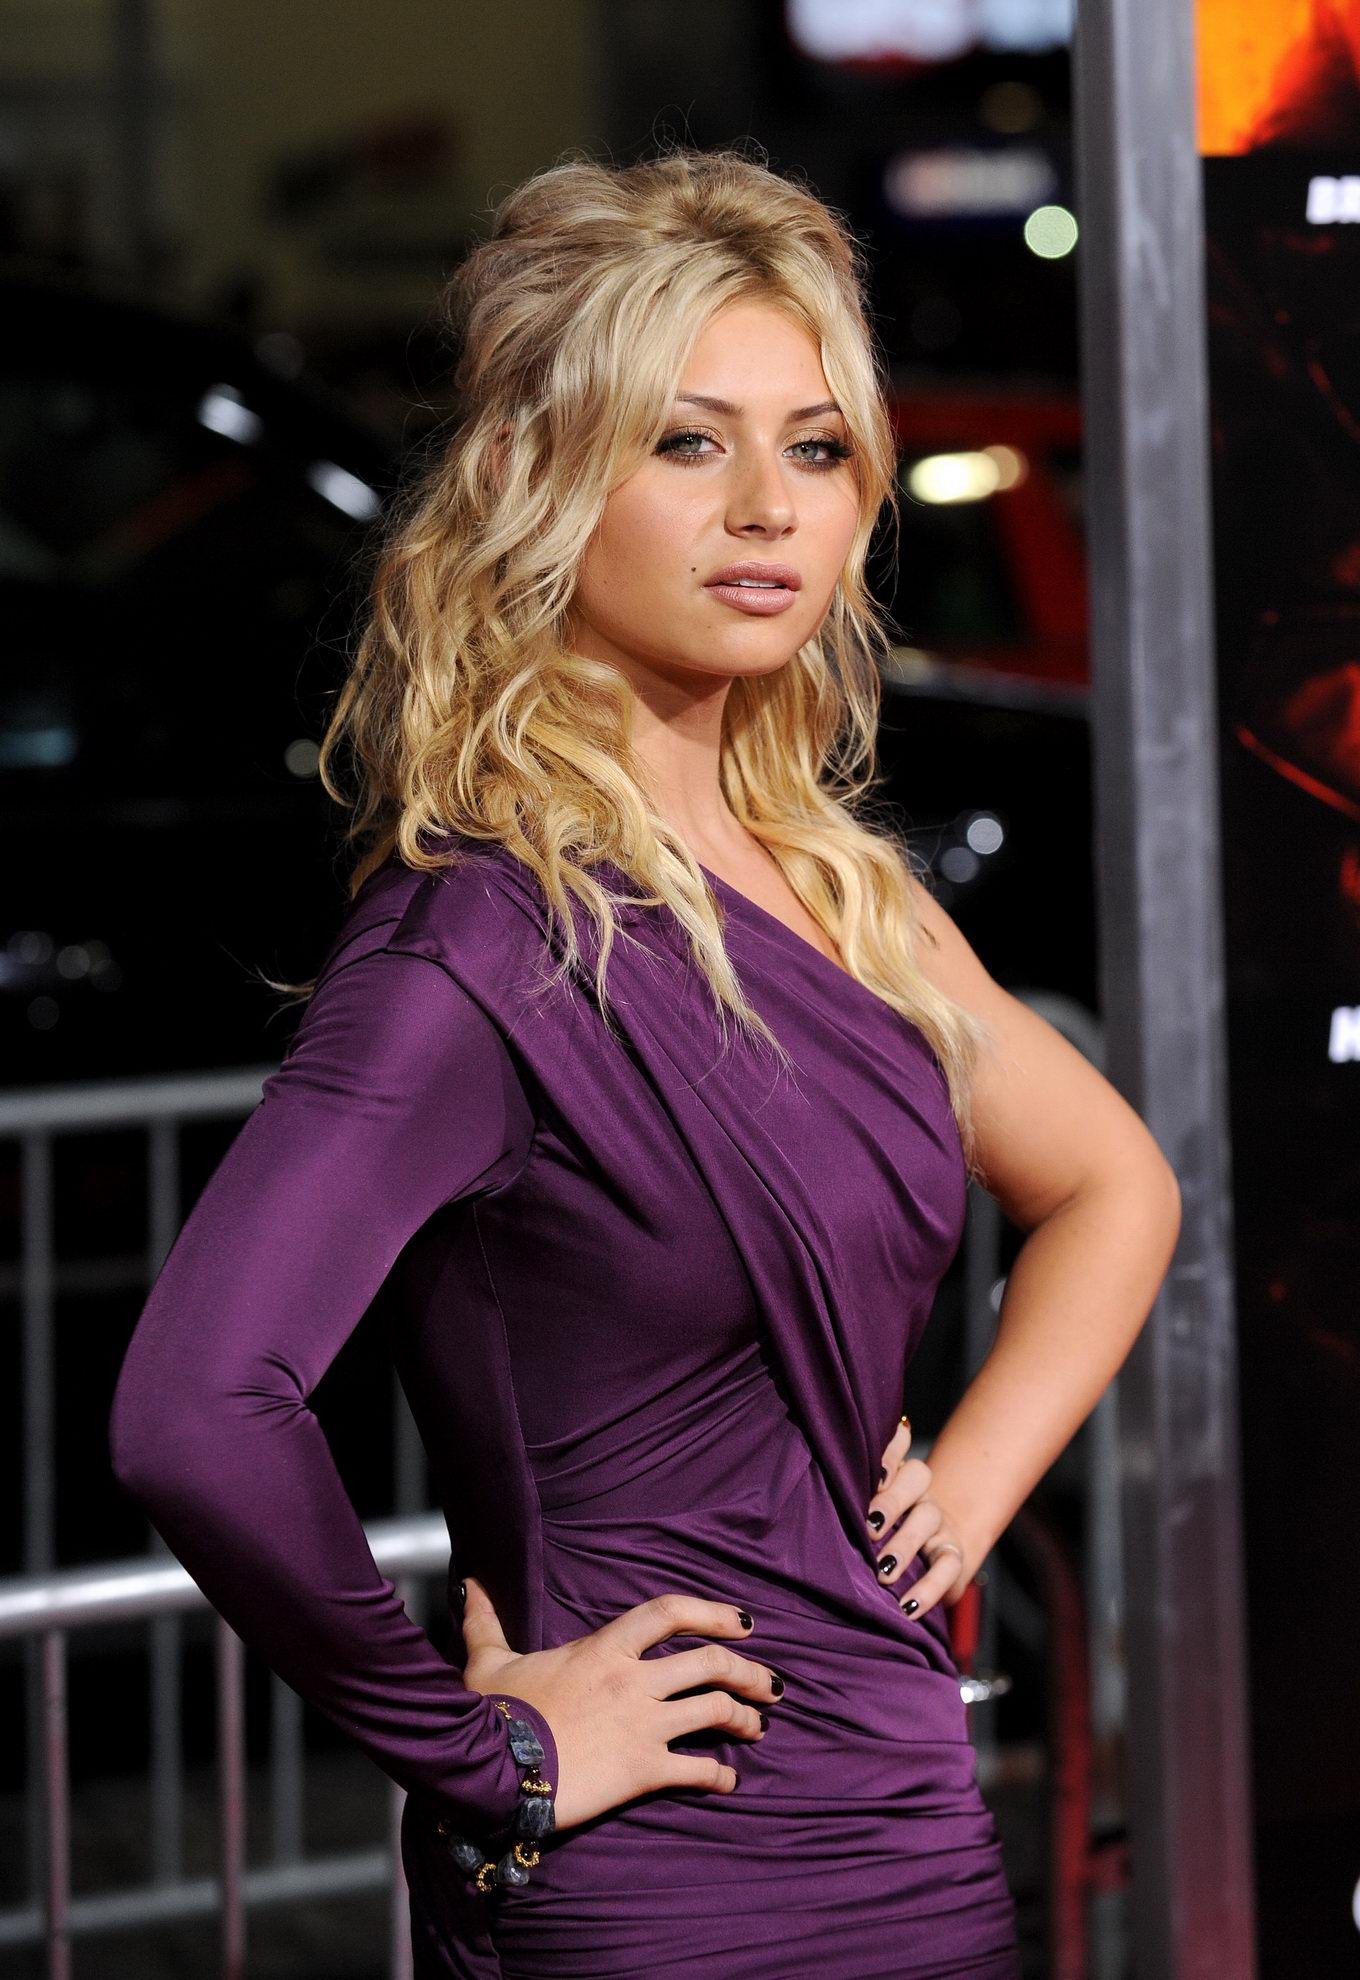 alyson michalka 13 ... comics depicting rape, incest and other sex crimes to under 18s.